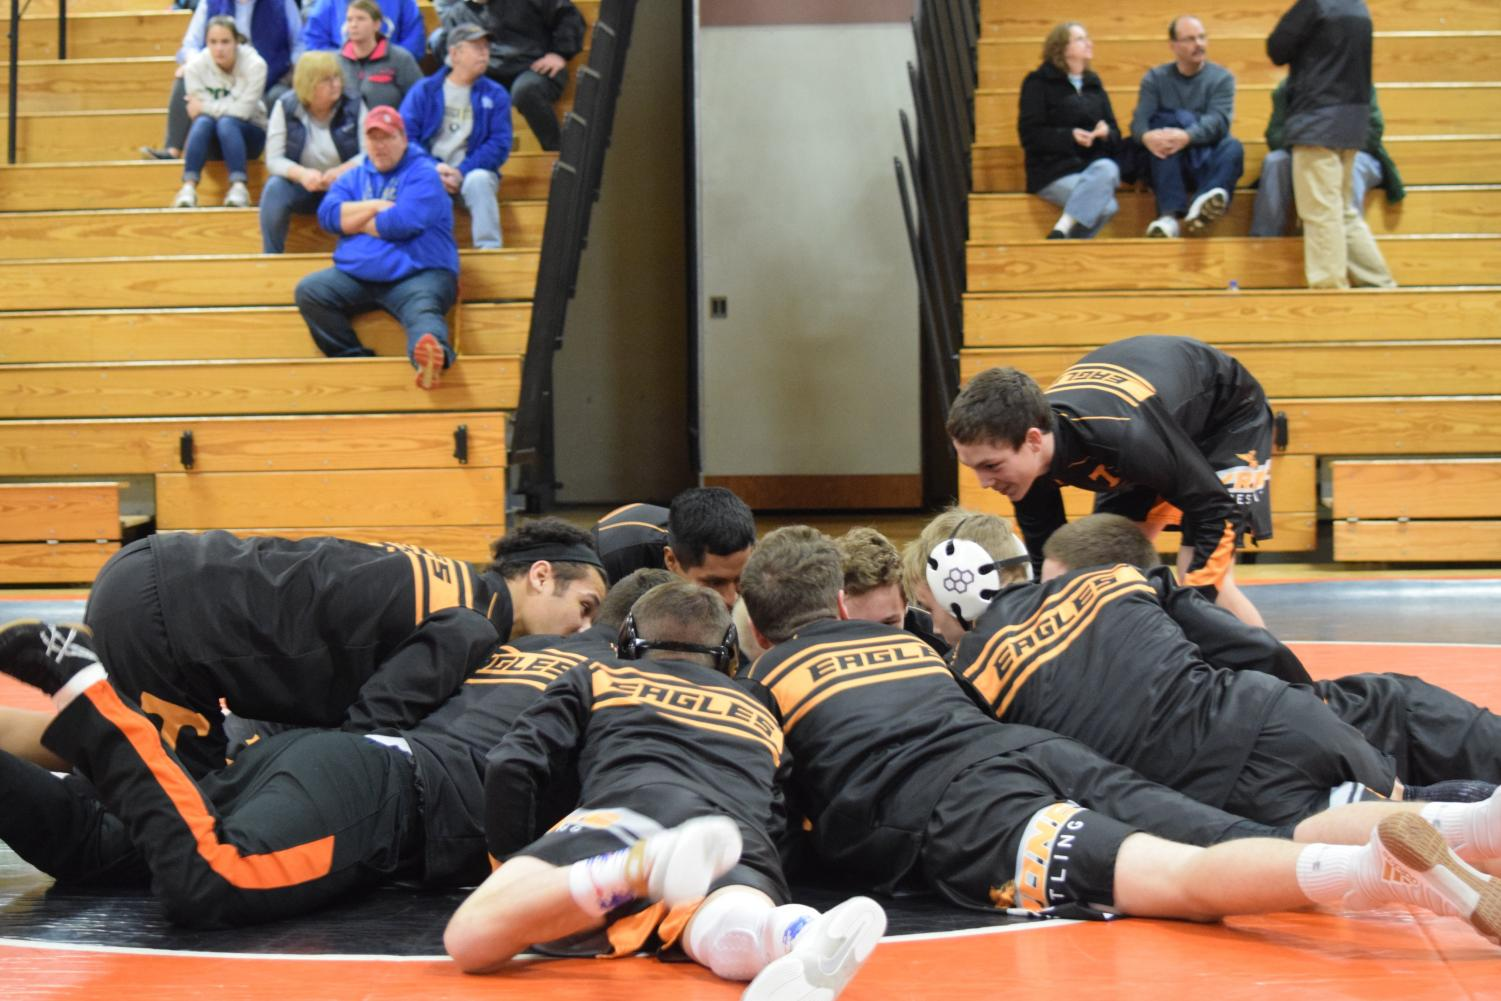 Tyrone wrestling team before the match.